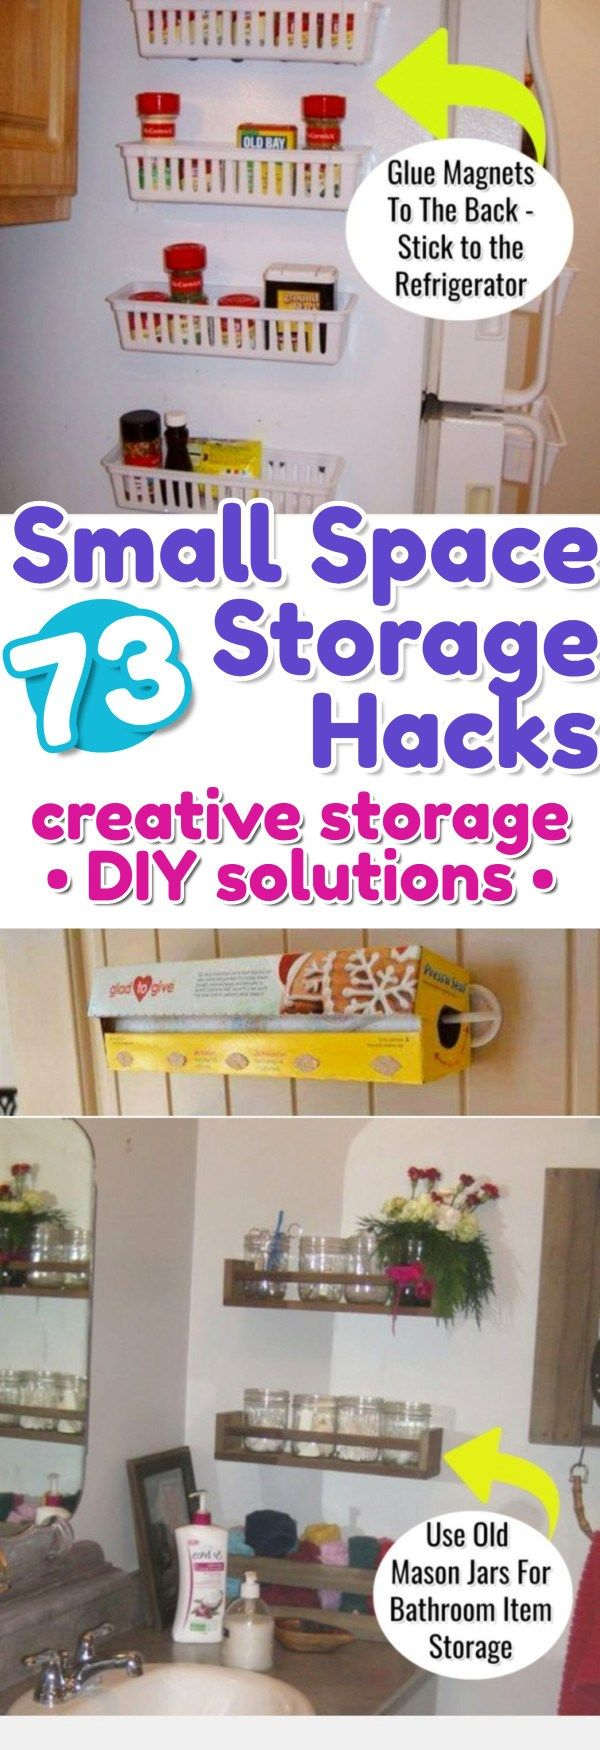 Creative Storage Solutions For Small Spaces | Bedroom Small, Storage Hacks  And Kitchen Small